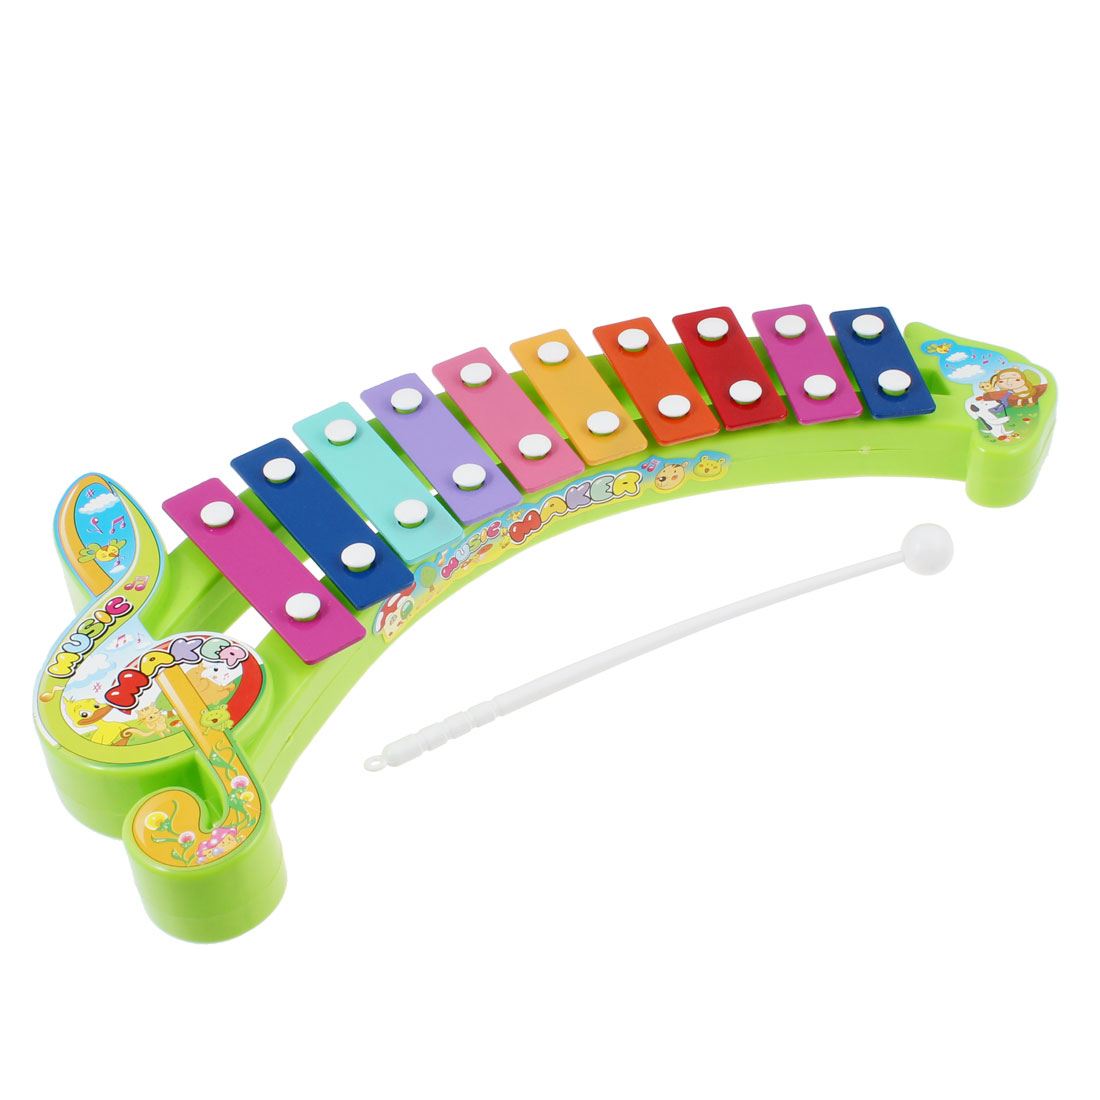 Plastic Sticks 10 Tone Music Beat Percussion Toy Colorful Xylophone for Children